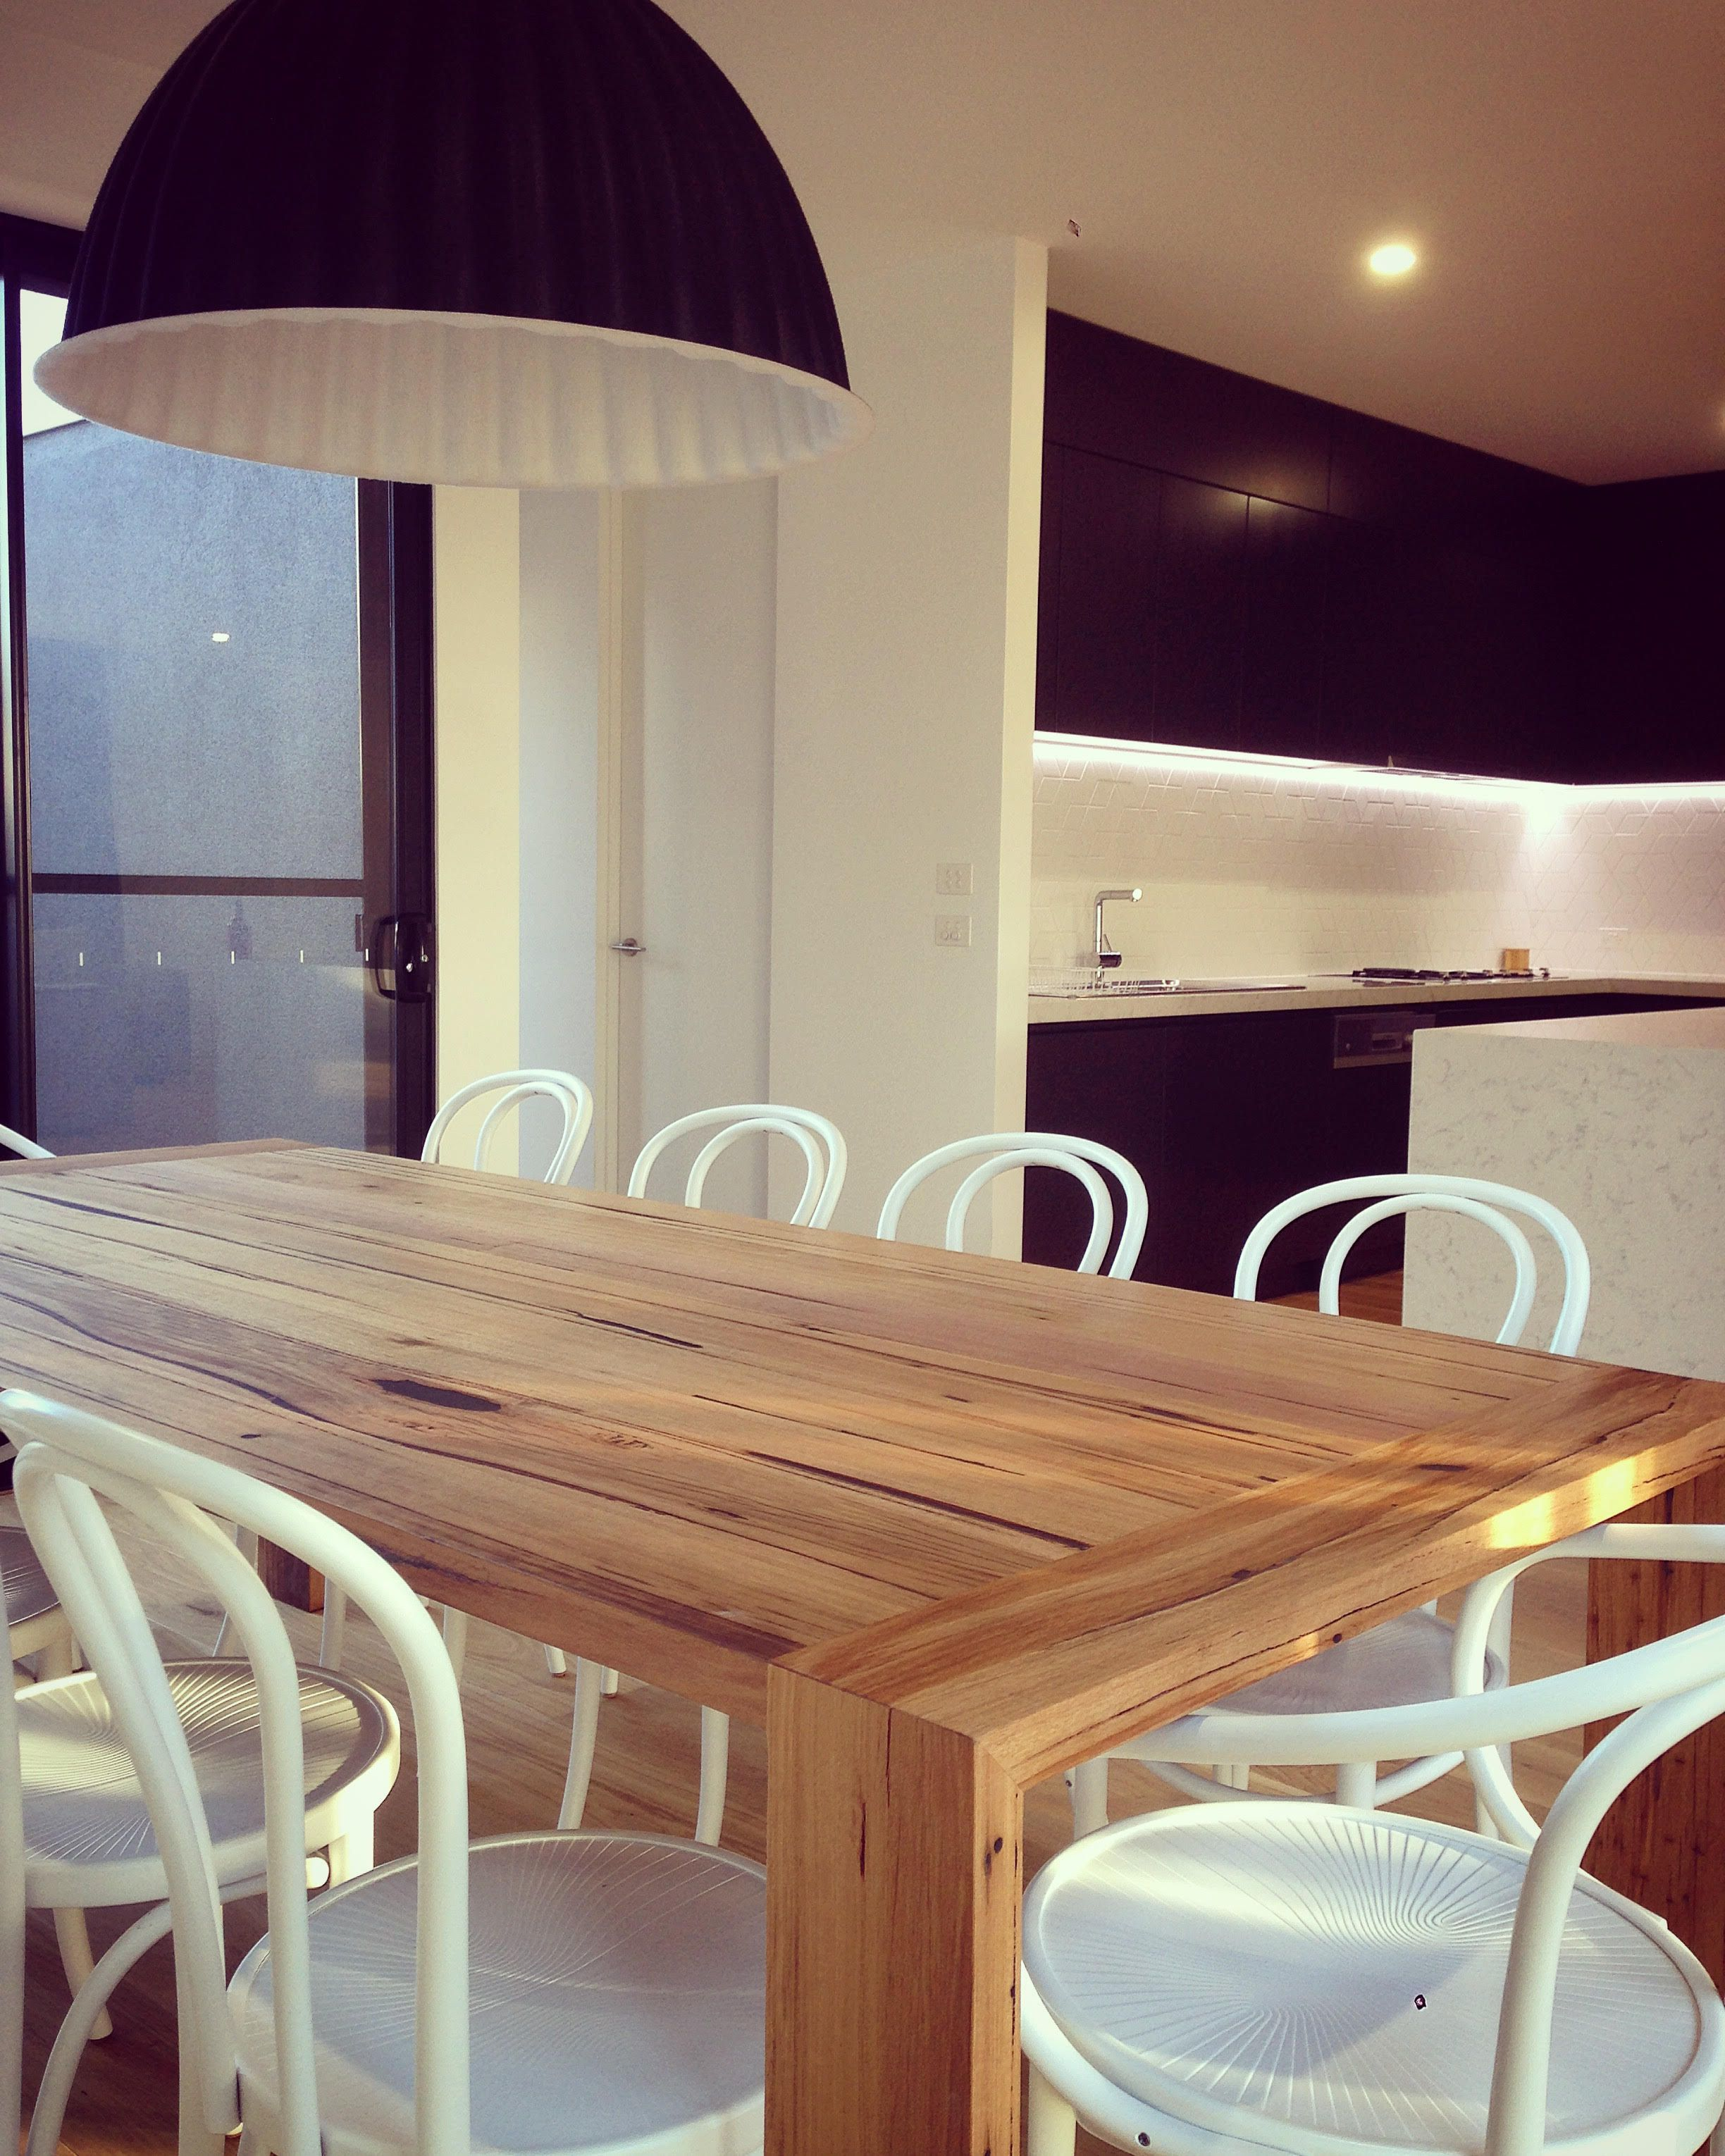 Custom dining table with waterfall breadboard ends made by Bombora